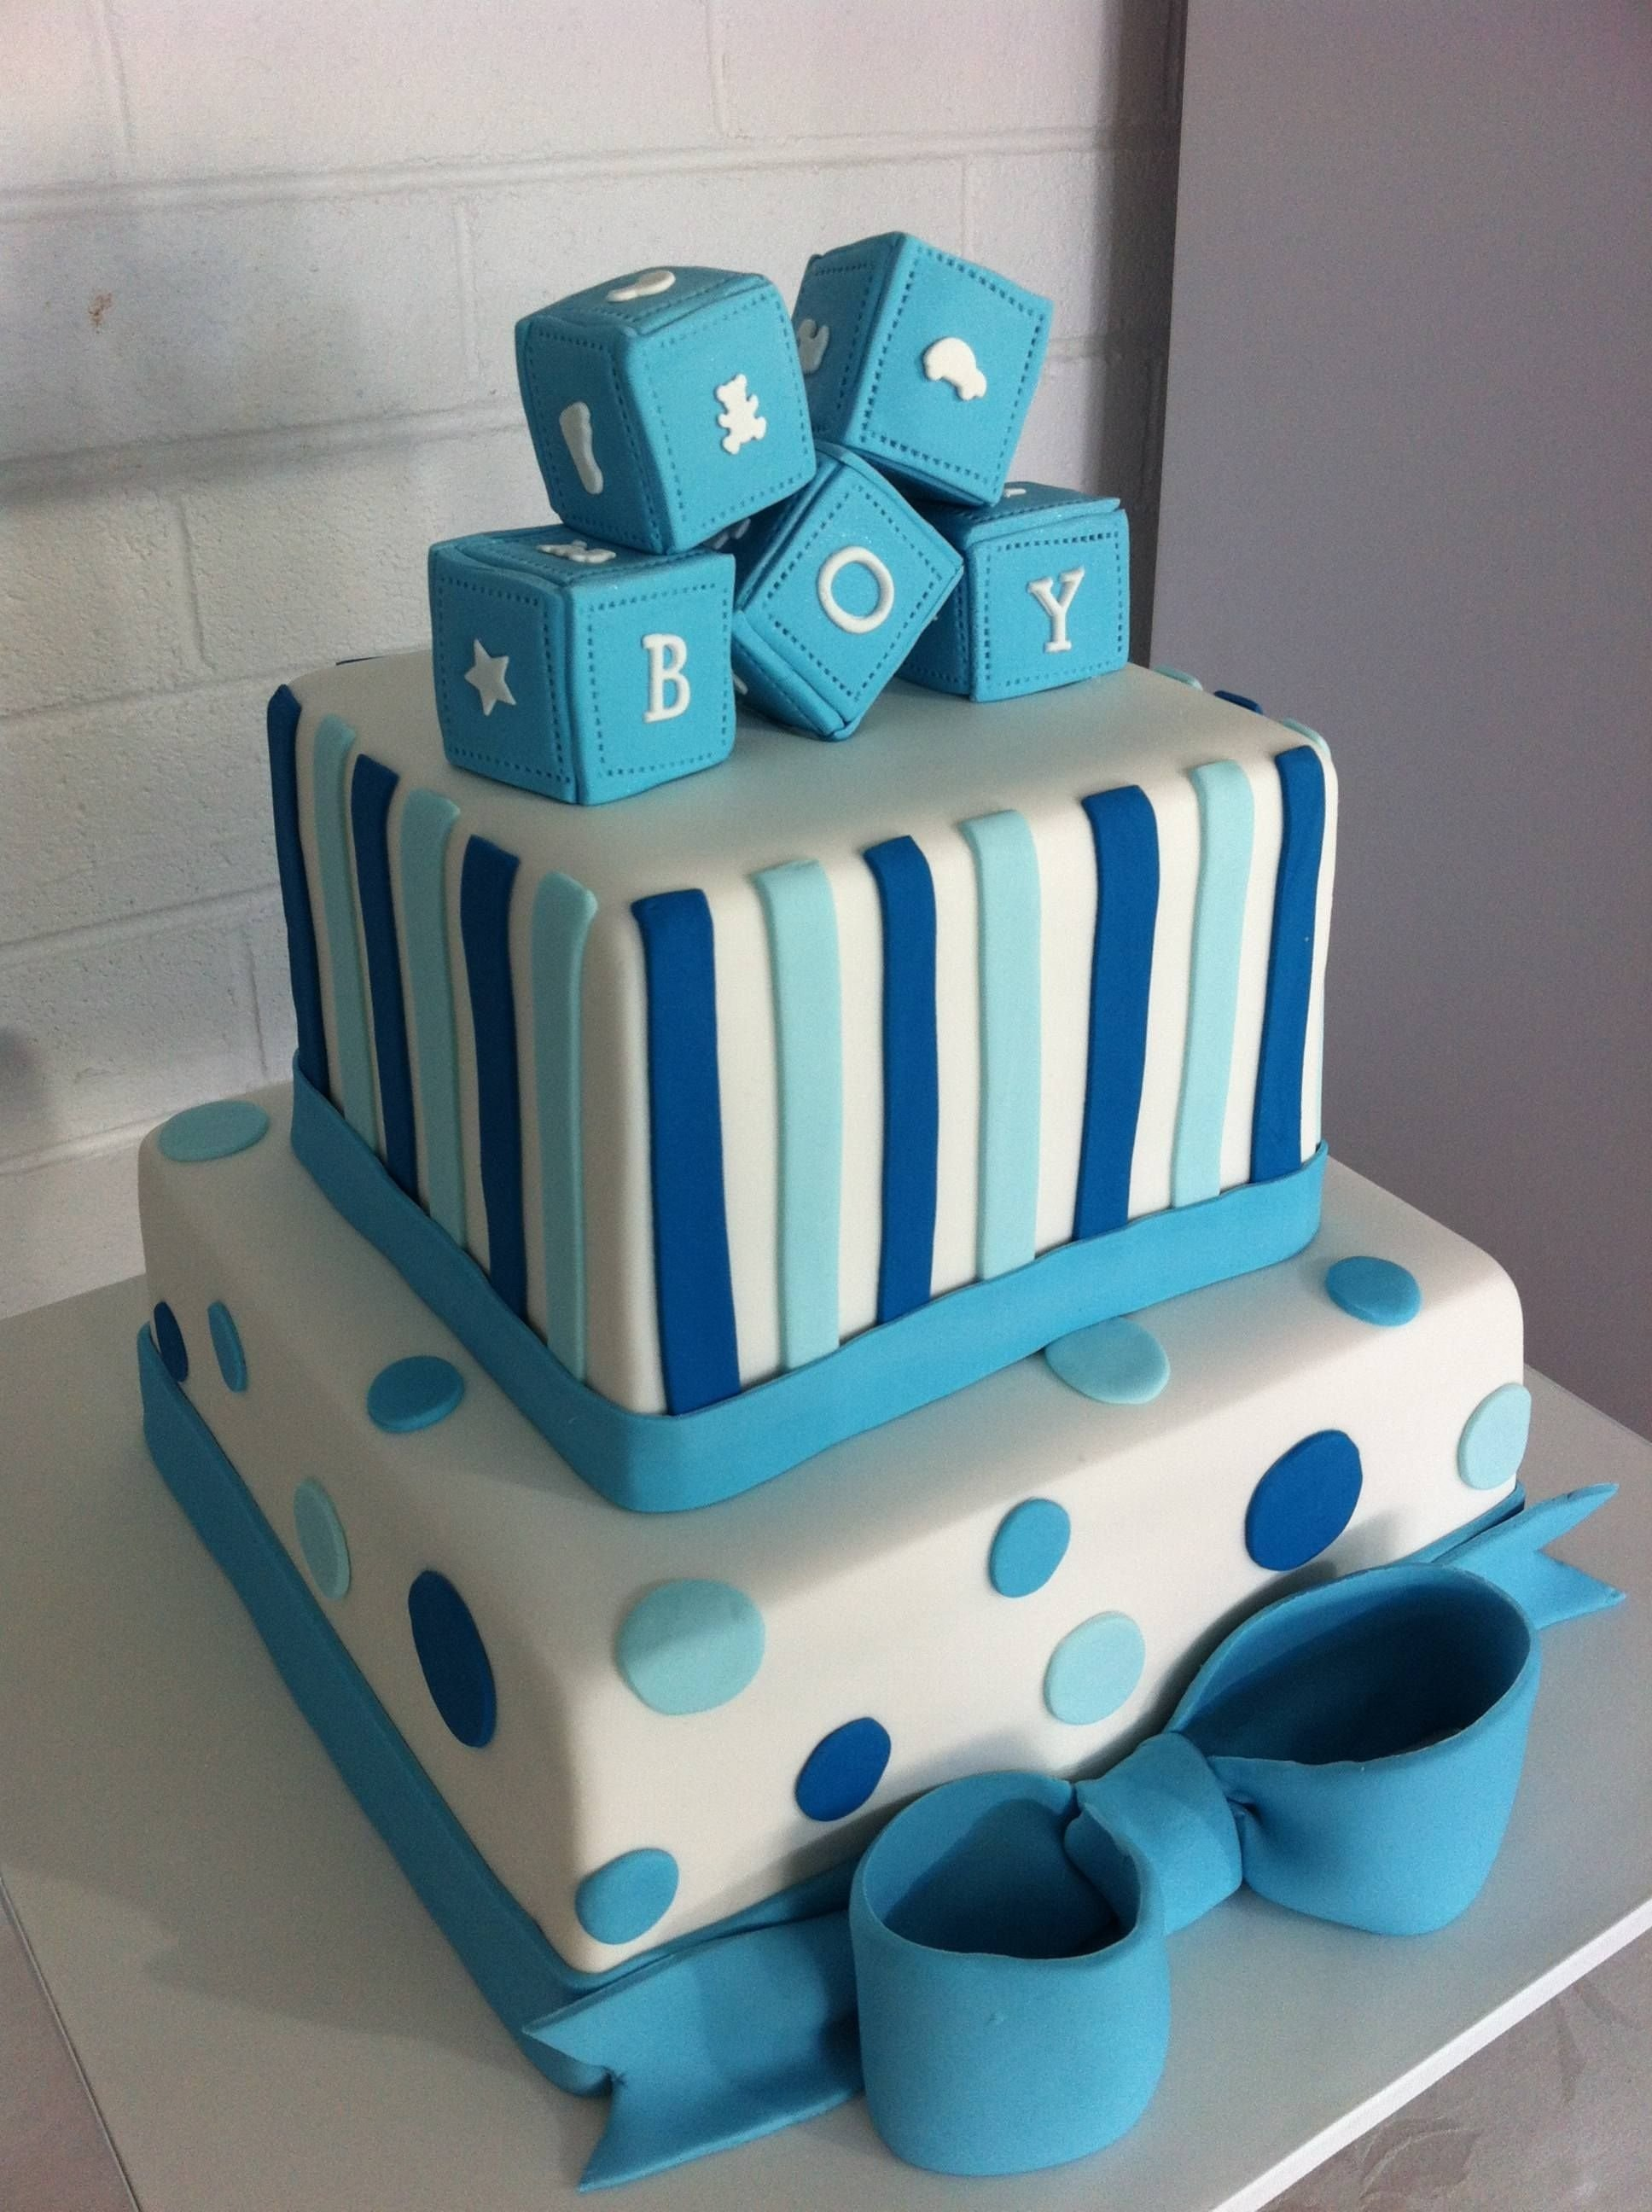 10 Famous Boy Baby Shower Cakes Ideas boy baby shower cakes cakesdesign our new creations other 3 2020